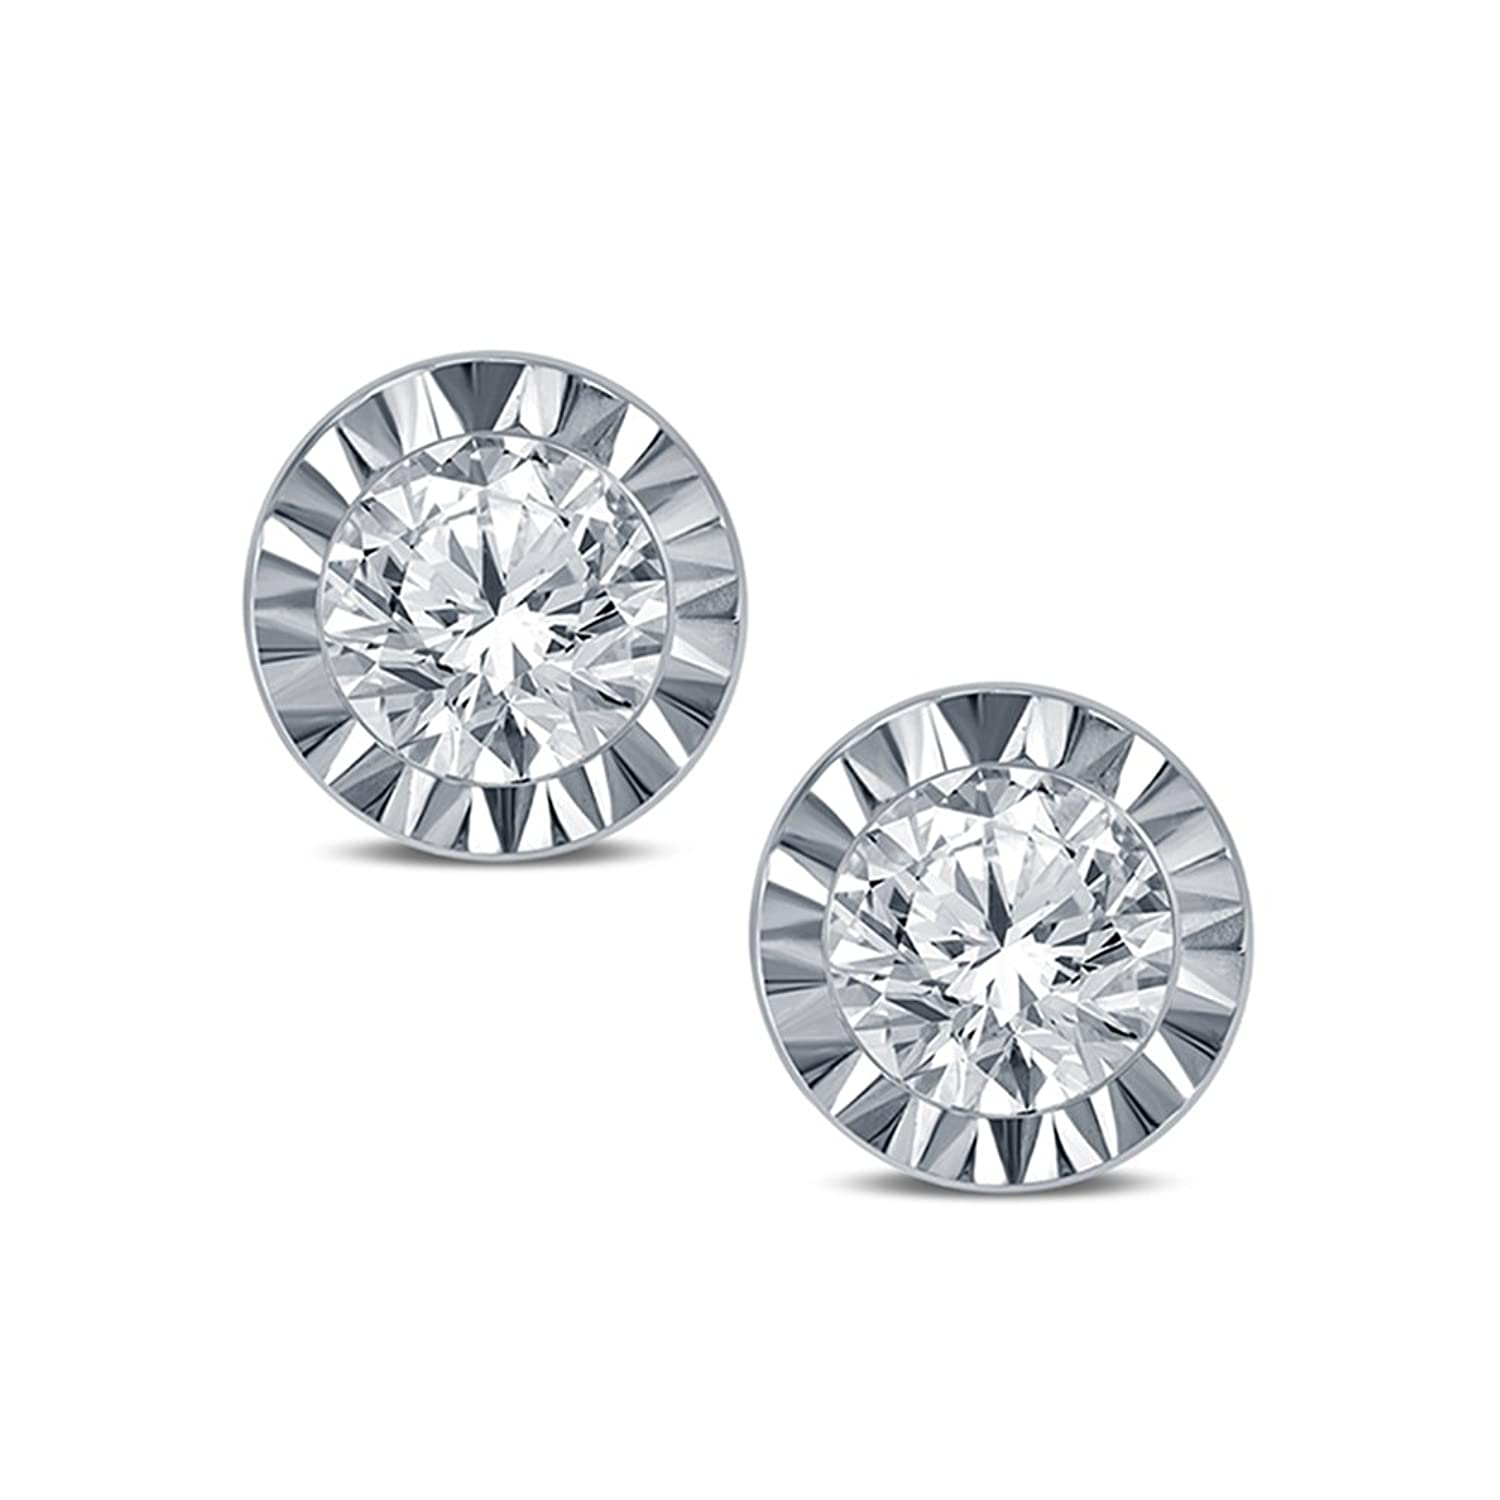 1/10 CT TW EGL Certified Miracle Round Diamond Solitaire Earring in 10K White Gold